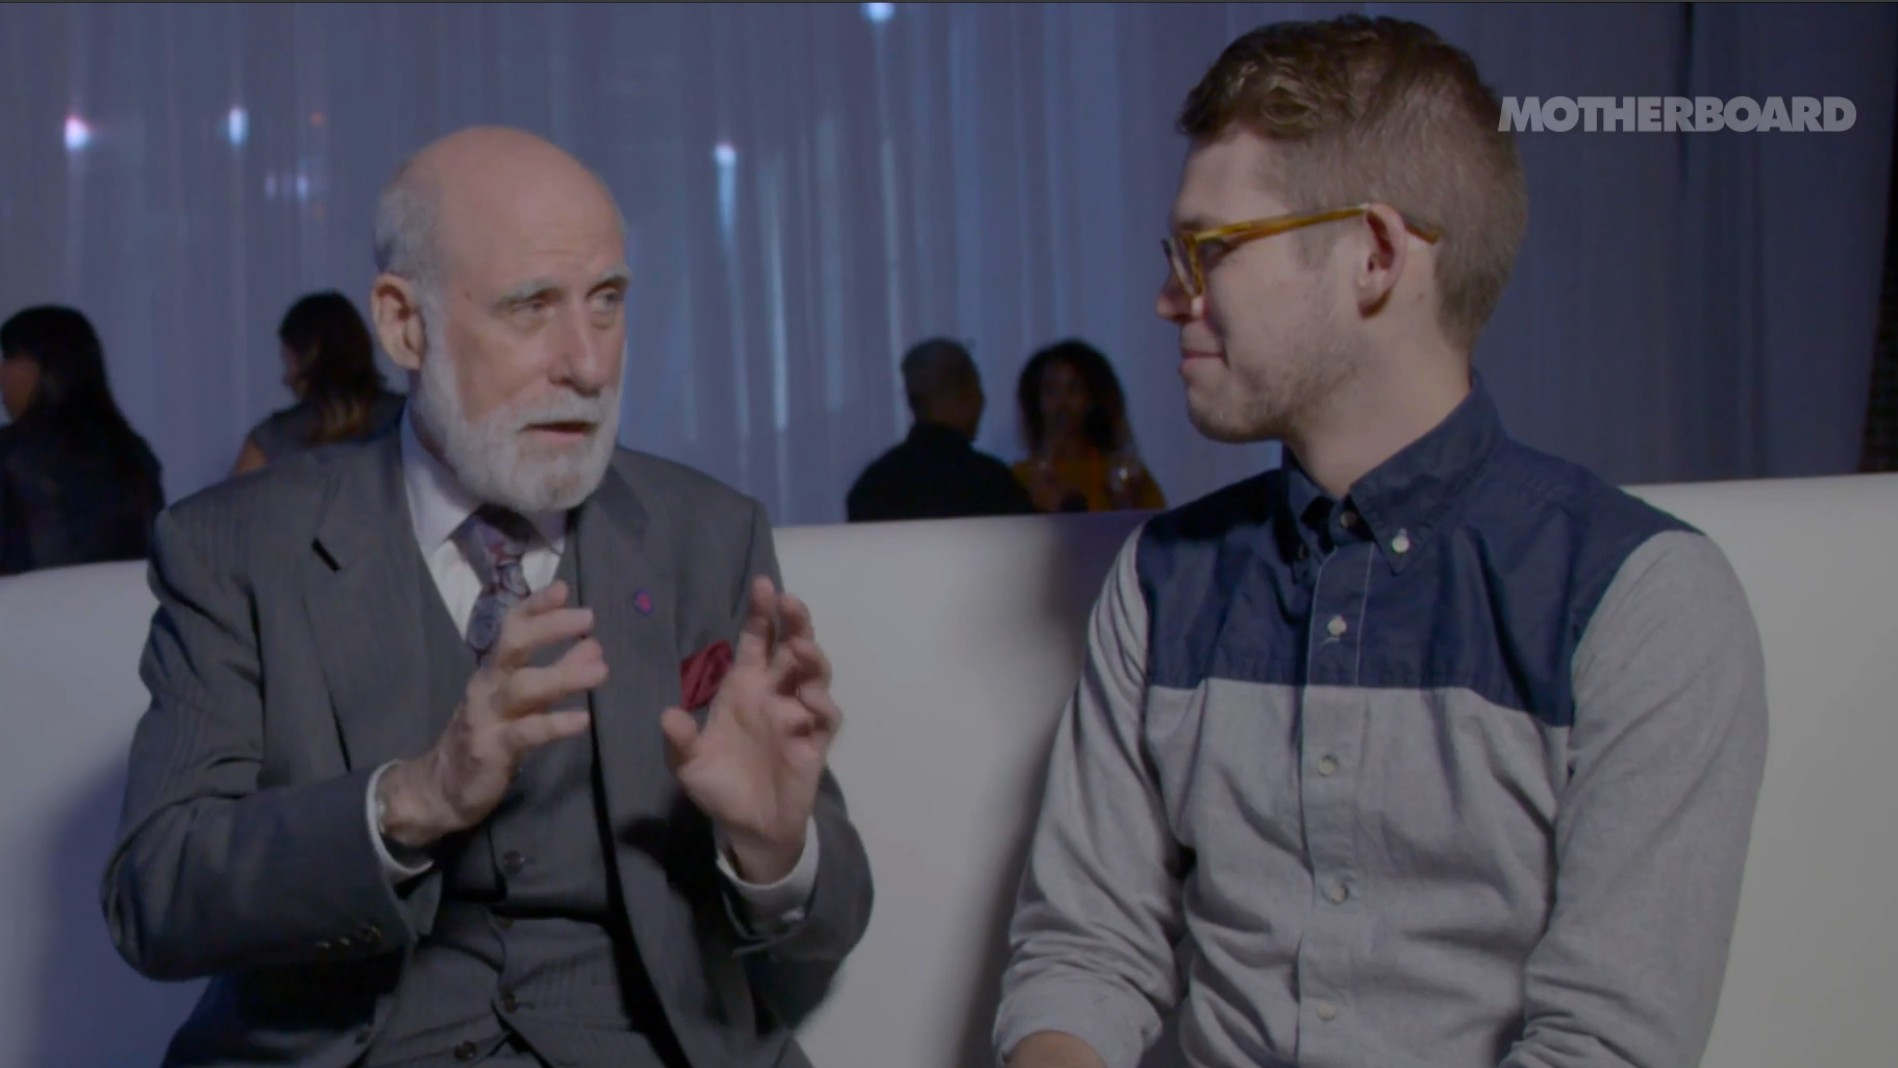 We Talked About Refrigerators with Vint Cerf, Father of the Internet